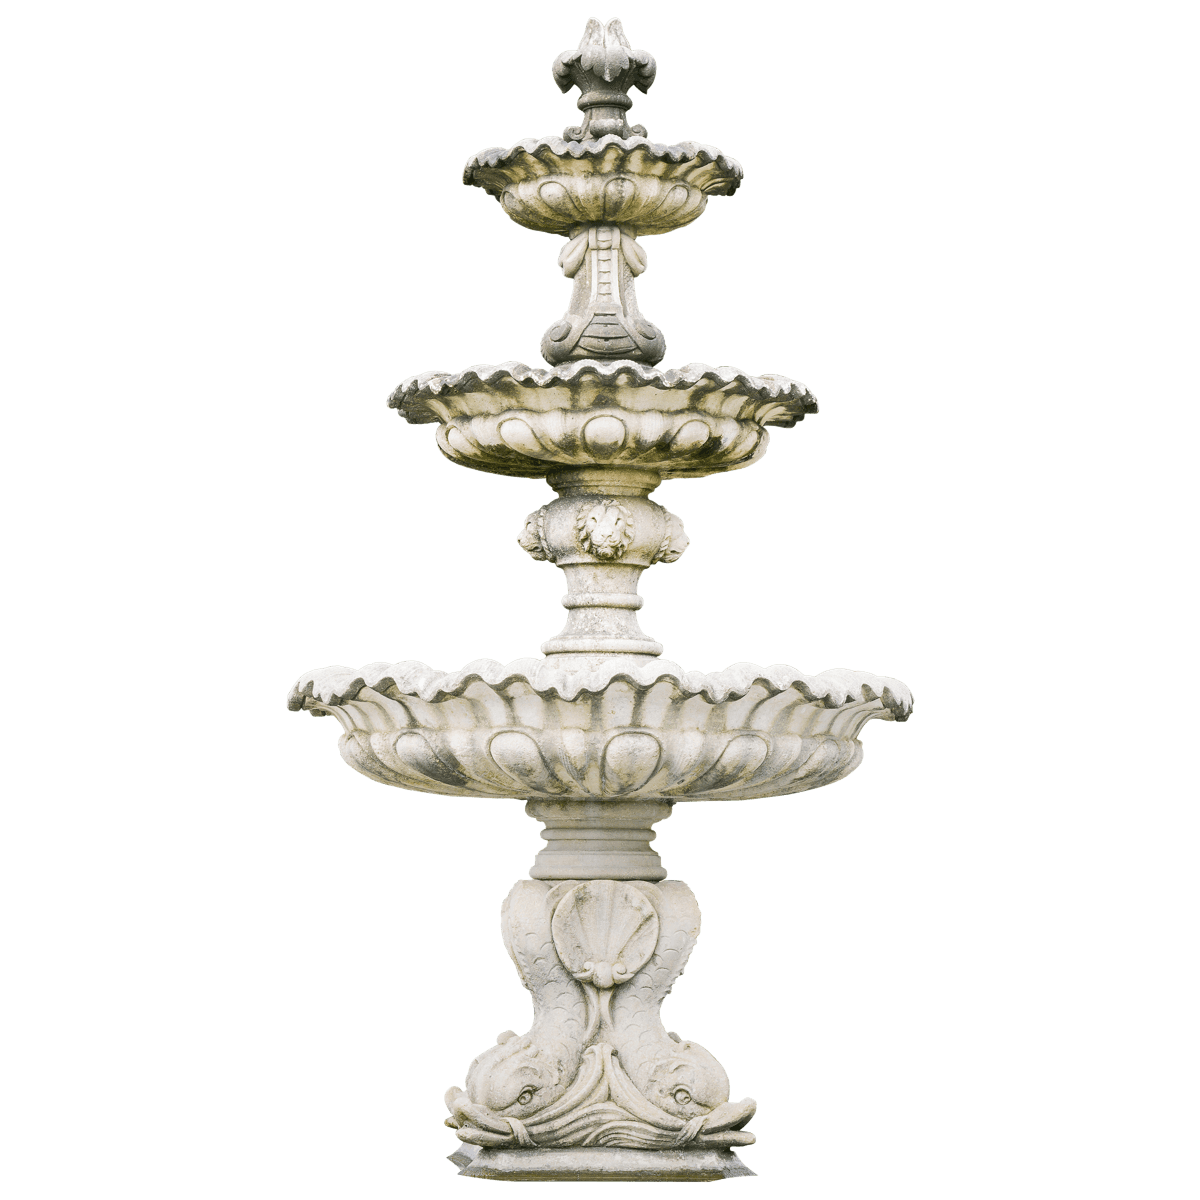 Water fountain png. Images free download